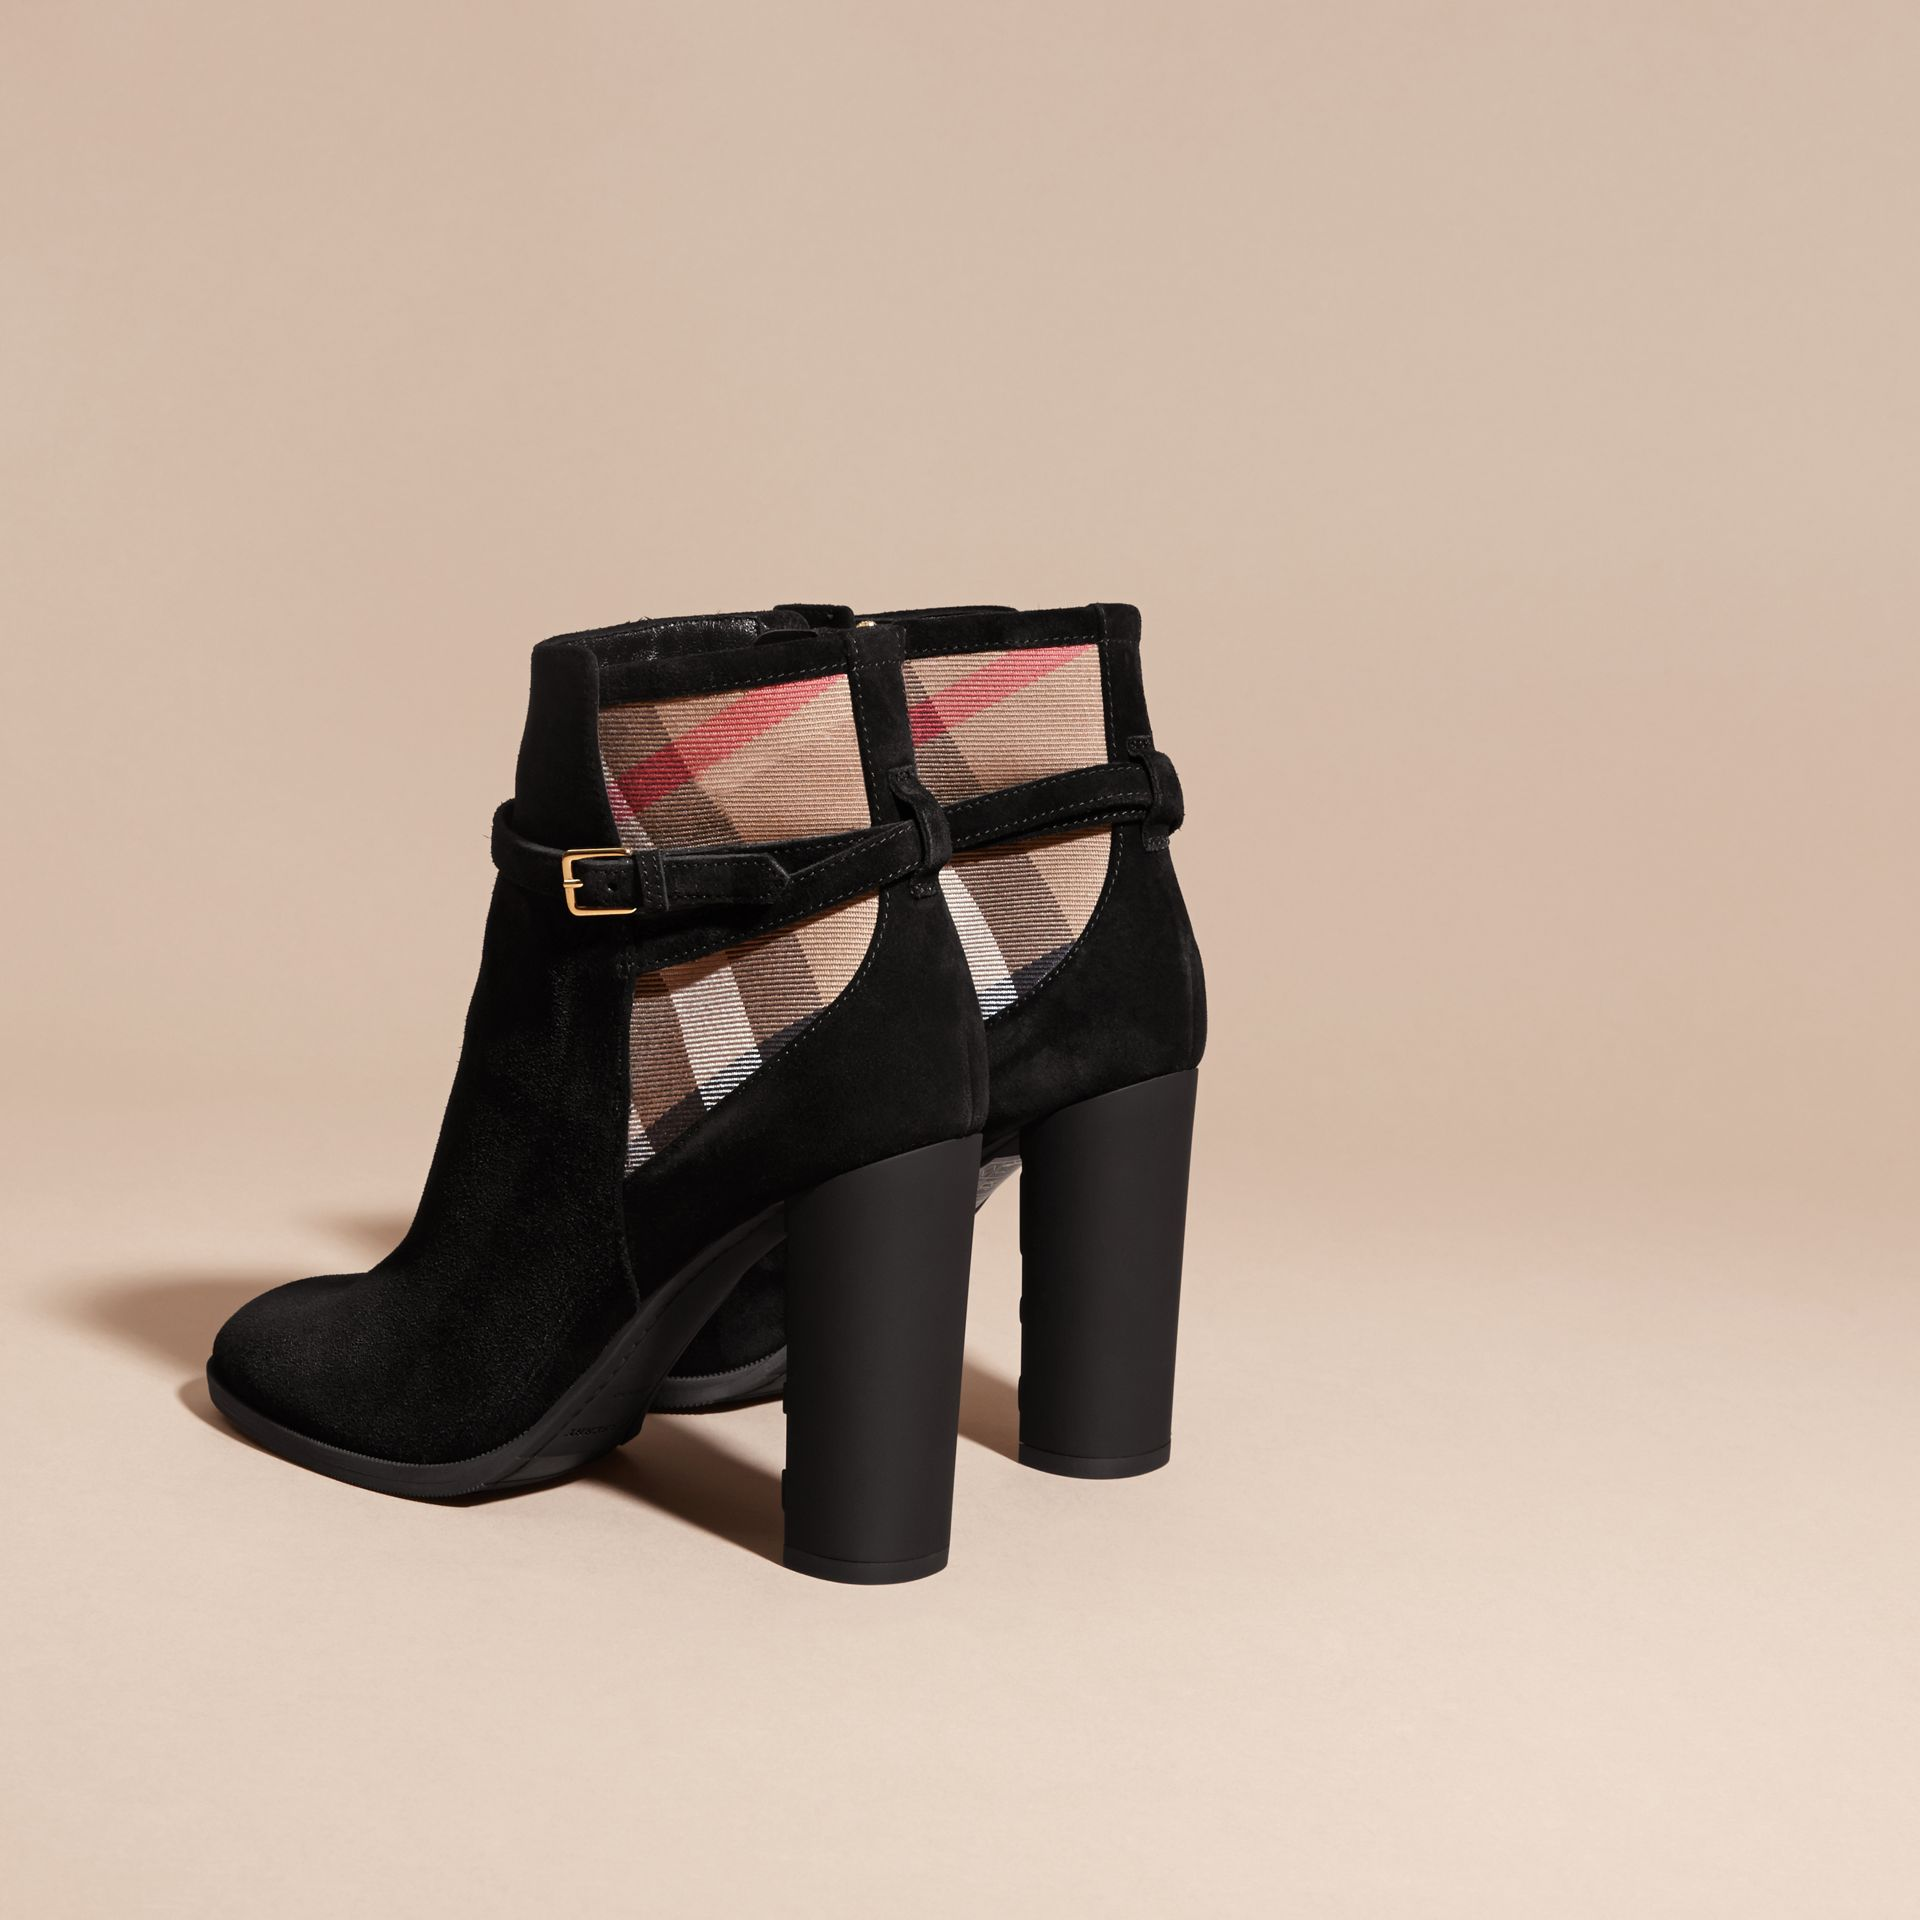 Noir Bottines en cuir velours avec motif House check - photo de la galerie 4